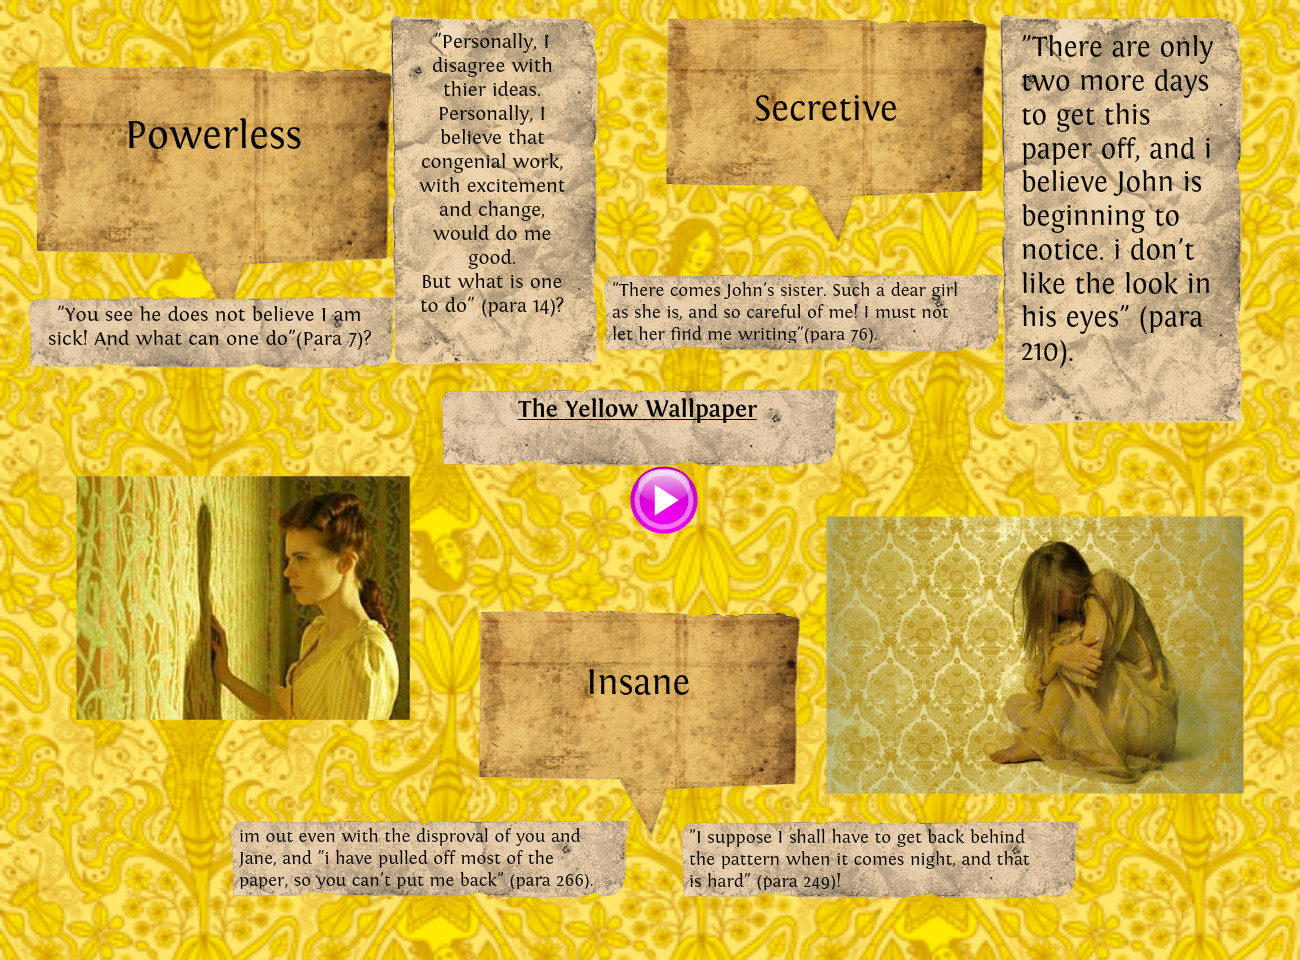 setting essay on the yellow wallpaper Essays, term papers, book reports, research papers on literature: yellow wallpaper free papers and essays on yellow wallpaper by charlotte gilman we provide free model essays on literature: yellow wallpaper, yellow wallpaper by charlotte gilman reports, and term paper samples related to yellow wallpaper by charlotte gilman.